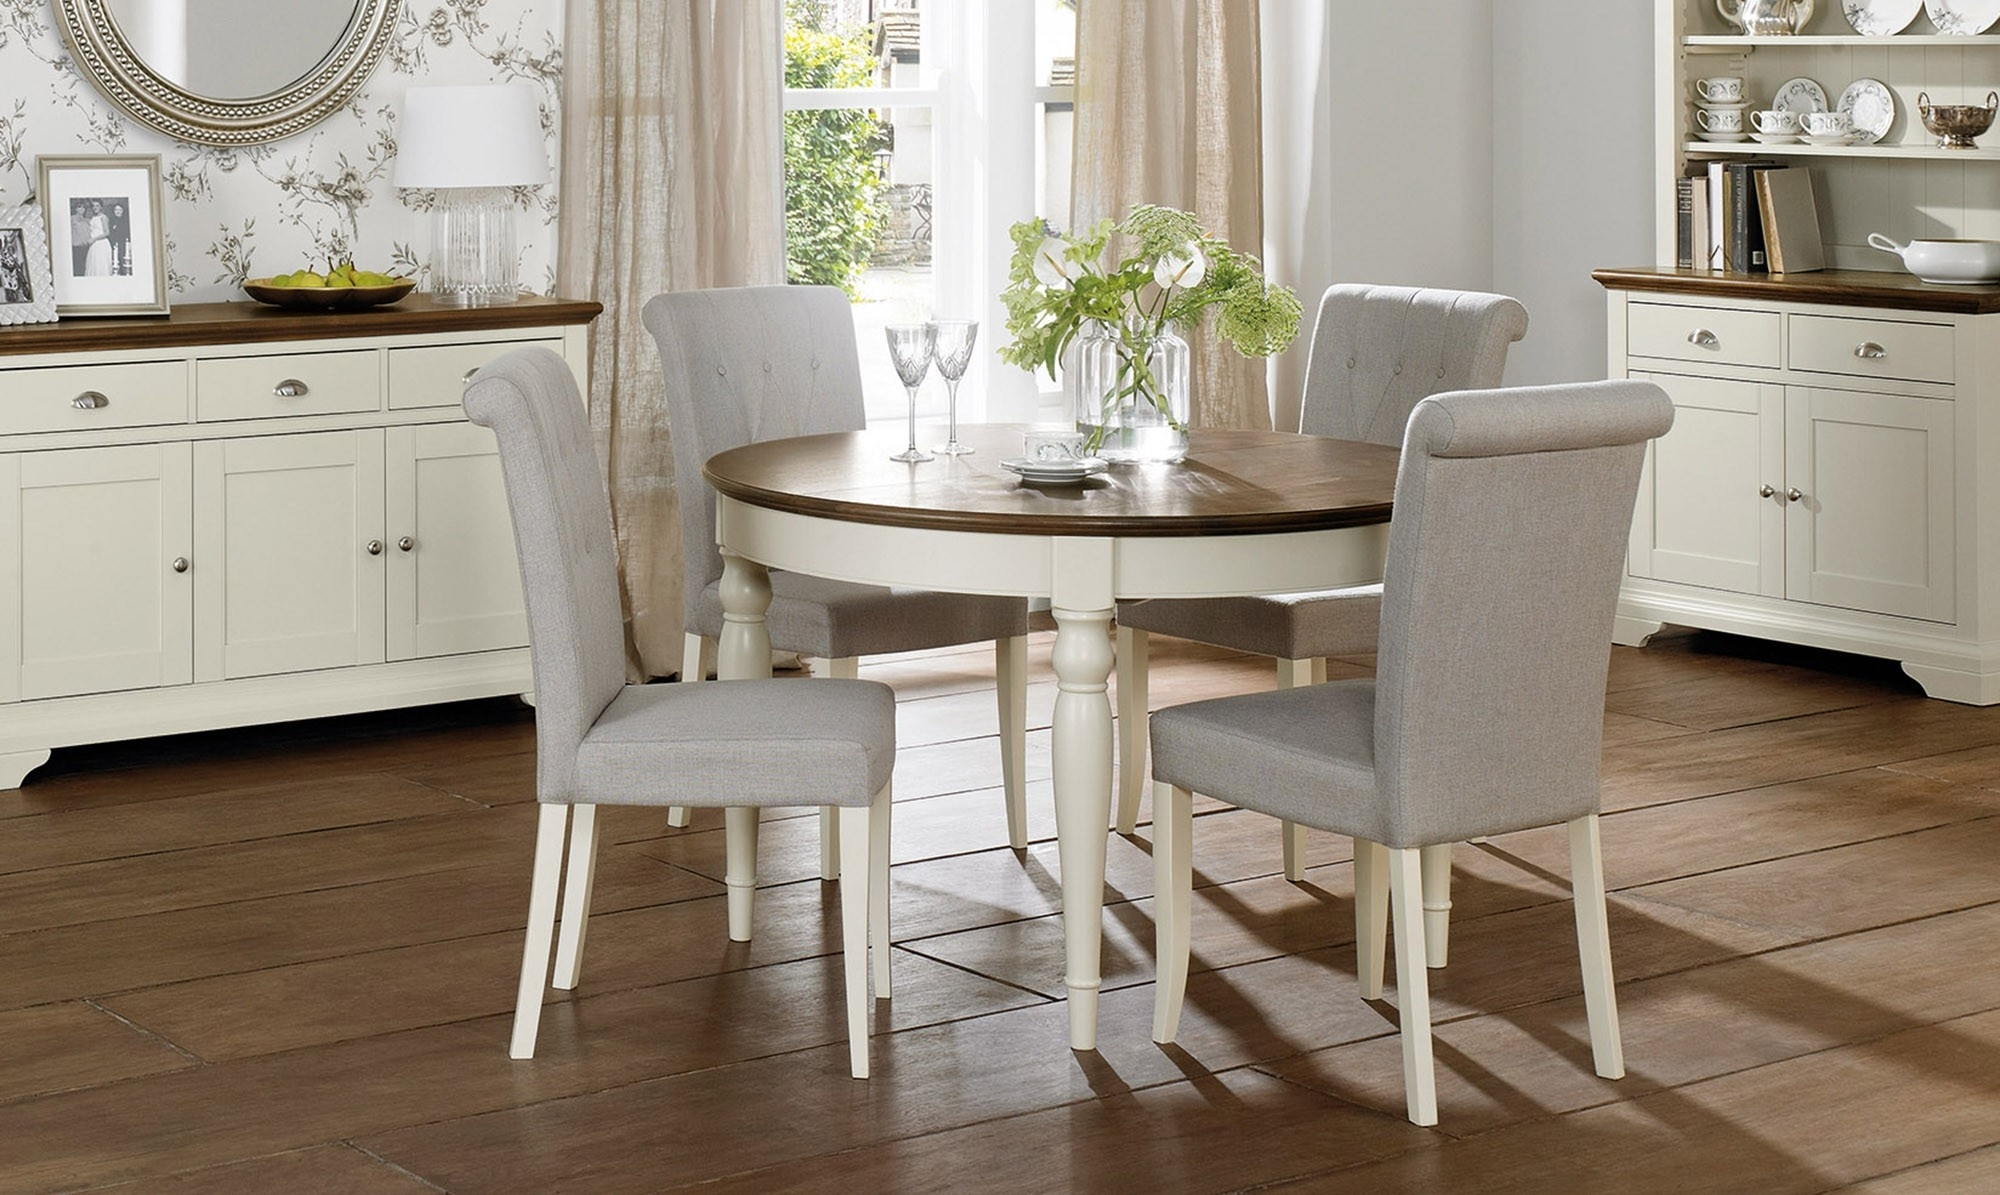 Newest Dining Tables: Interesting Small Circular Dining Table And Chairs Inside Circular Dining Tables For  (View 18 of 25)